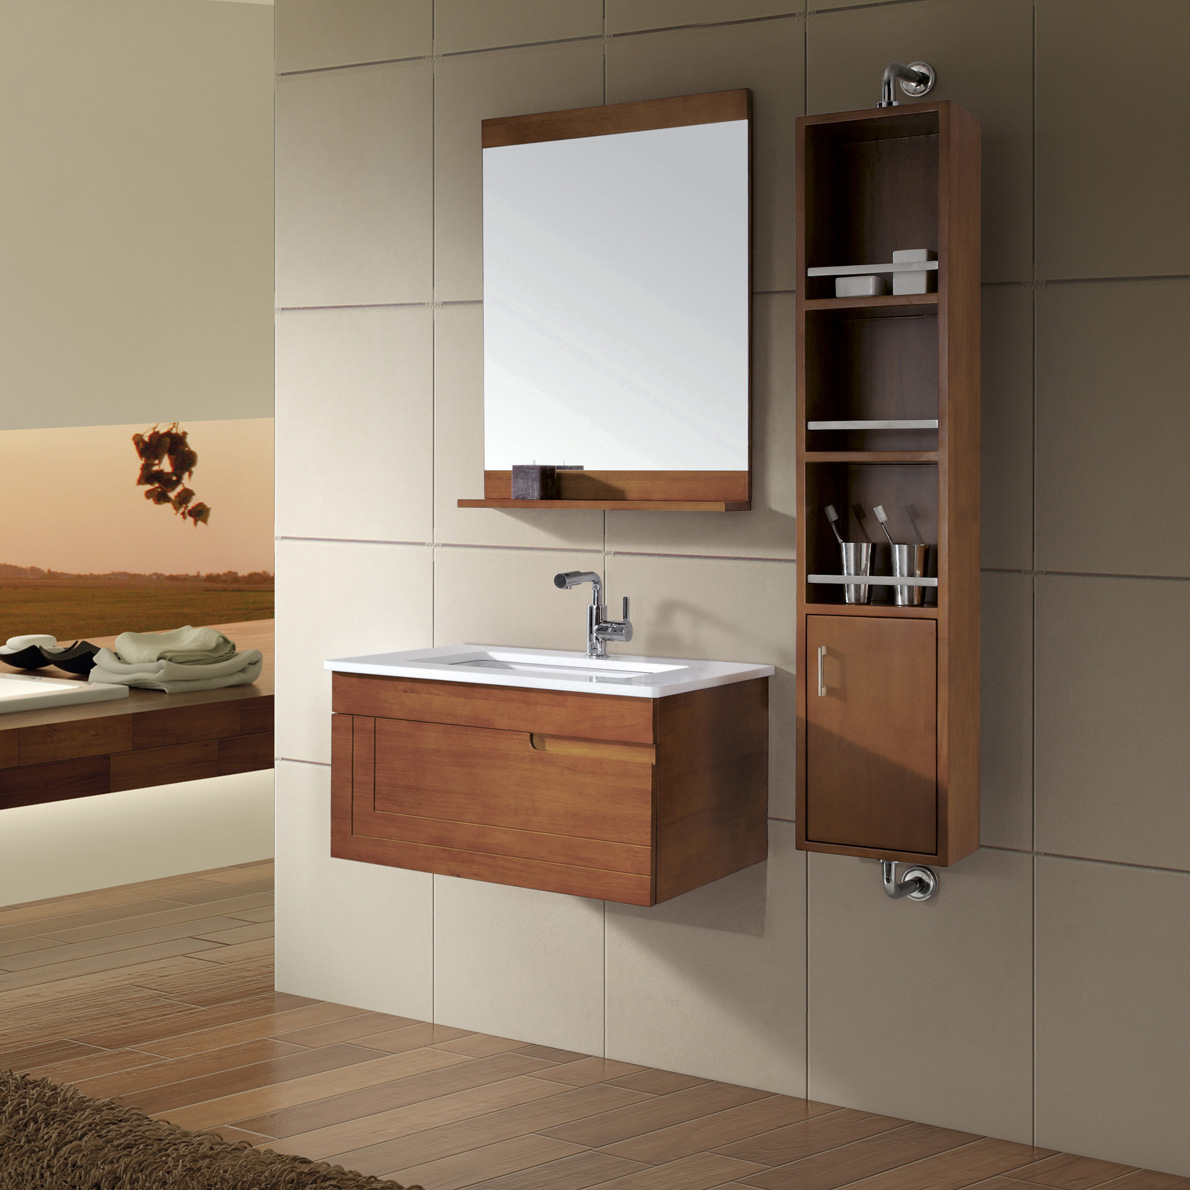 China bathroom cabinet vanity kl269 china bathroom for Bathroom wall vanity cabinets